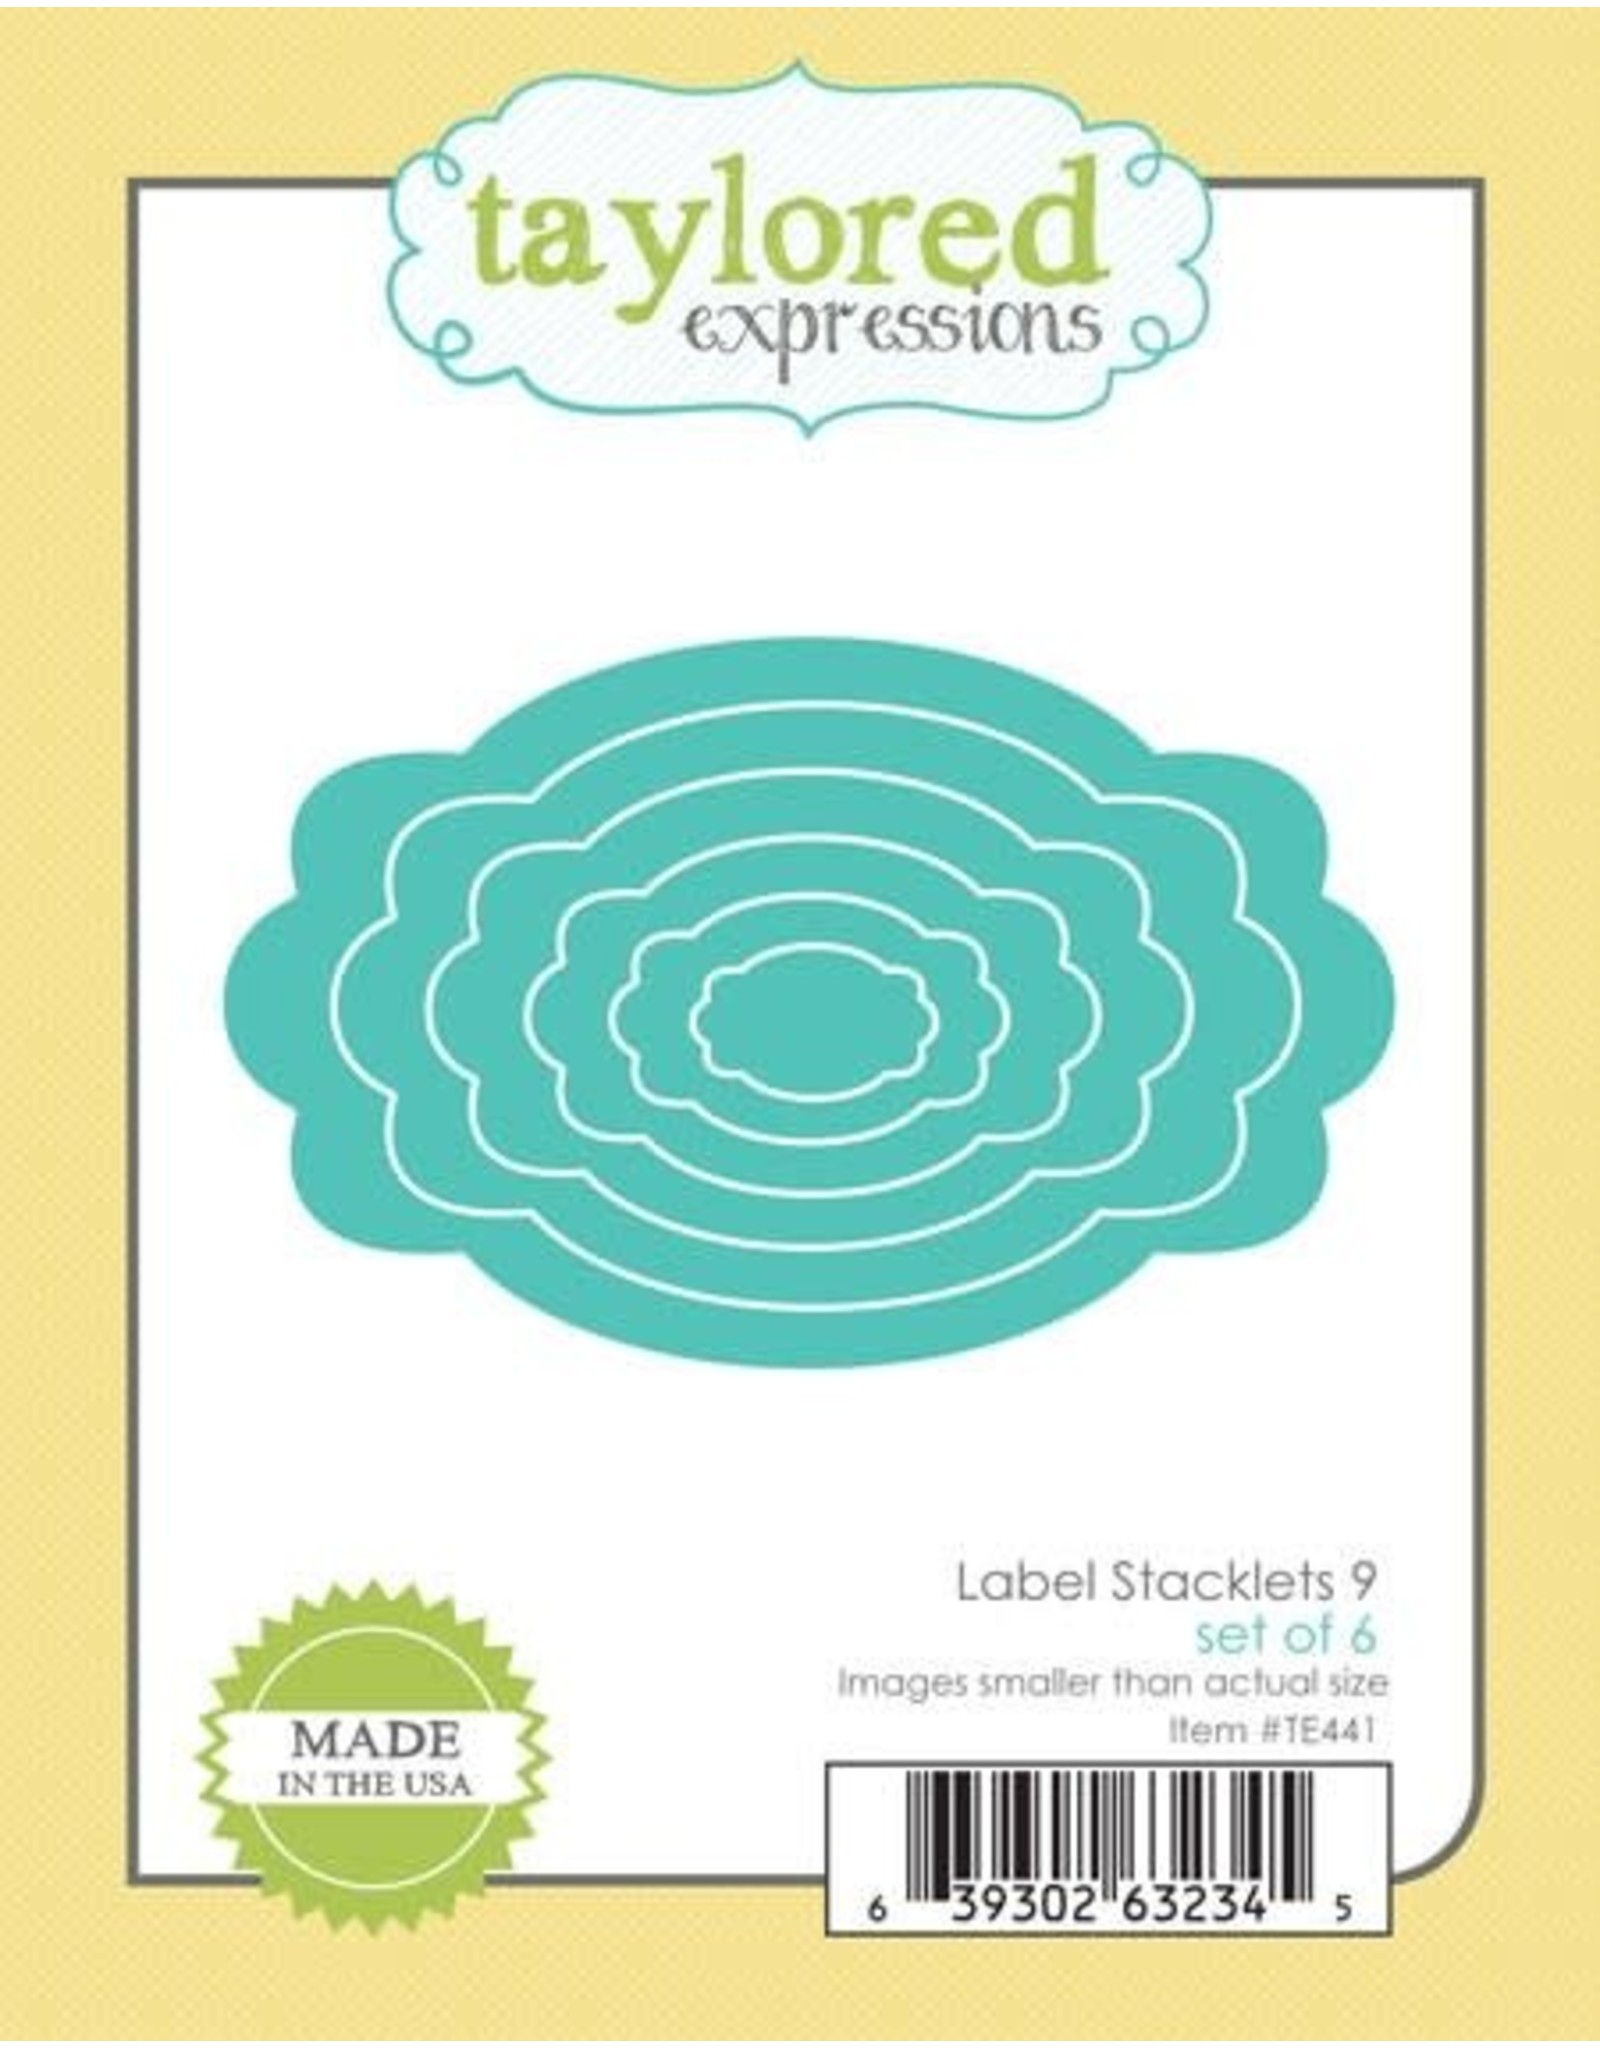 Taylored Expressions Label Stacklets 9 - Dies (RETIRED) (25%)